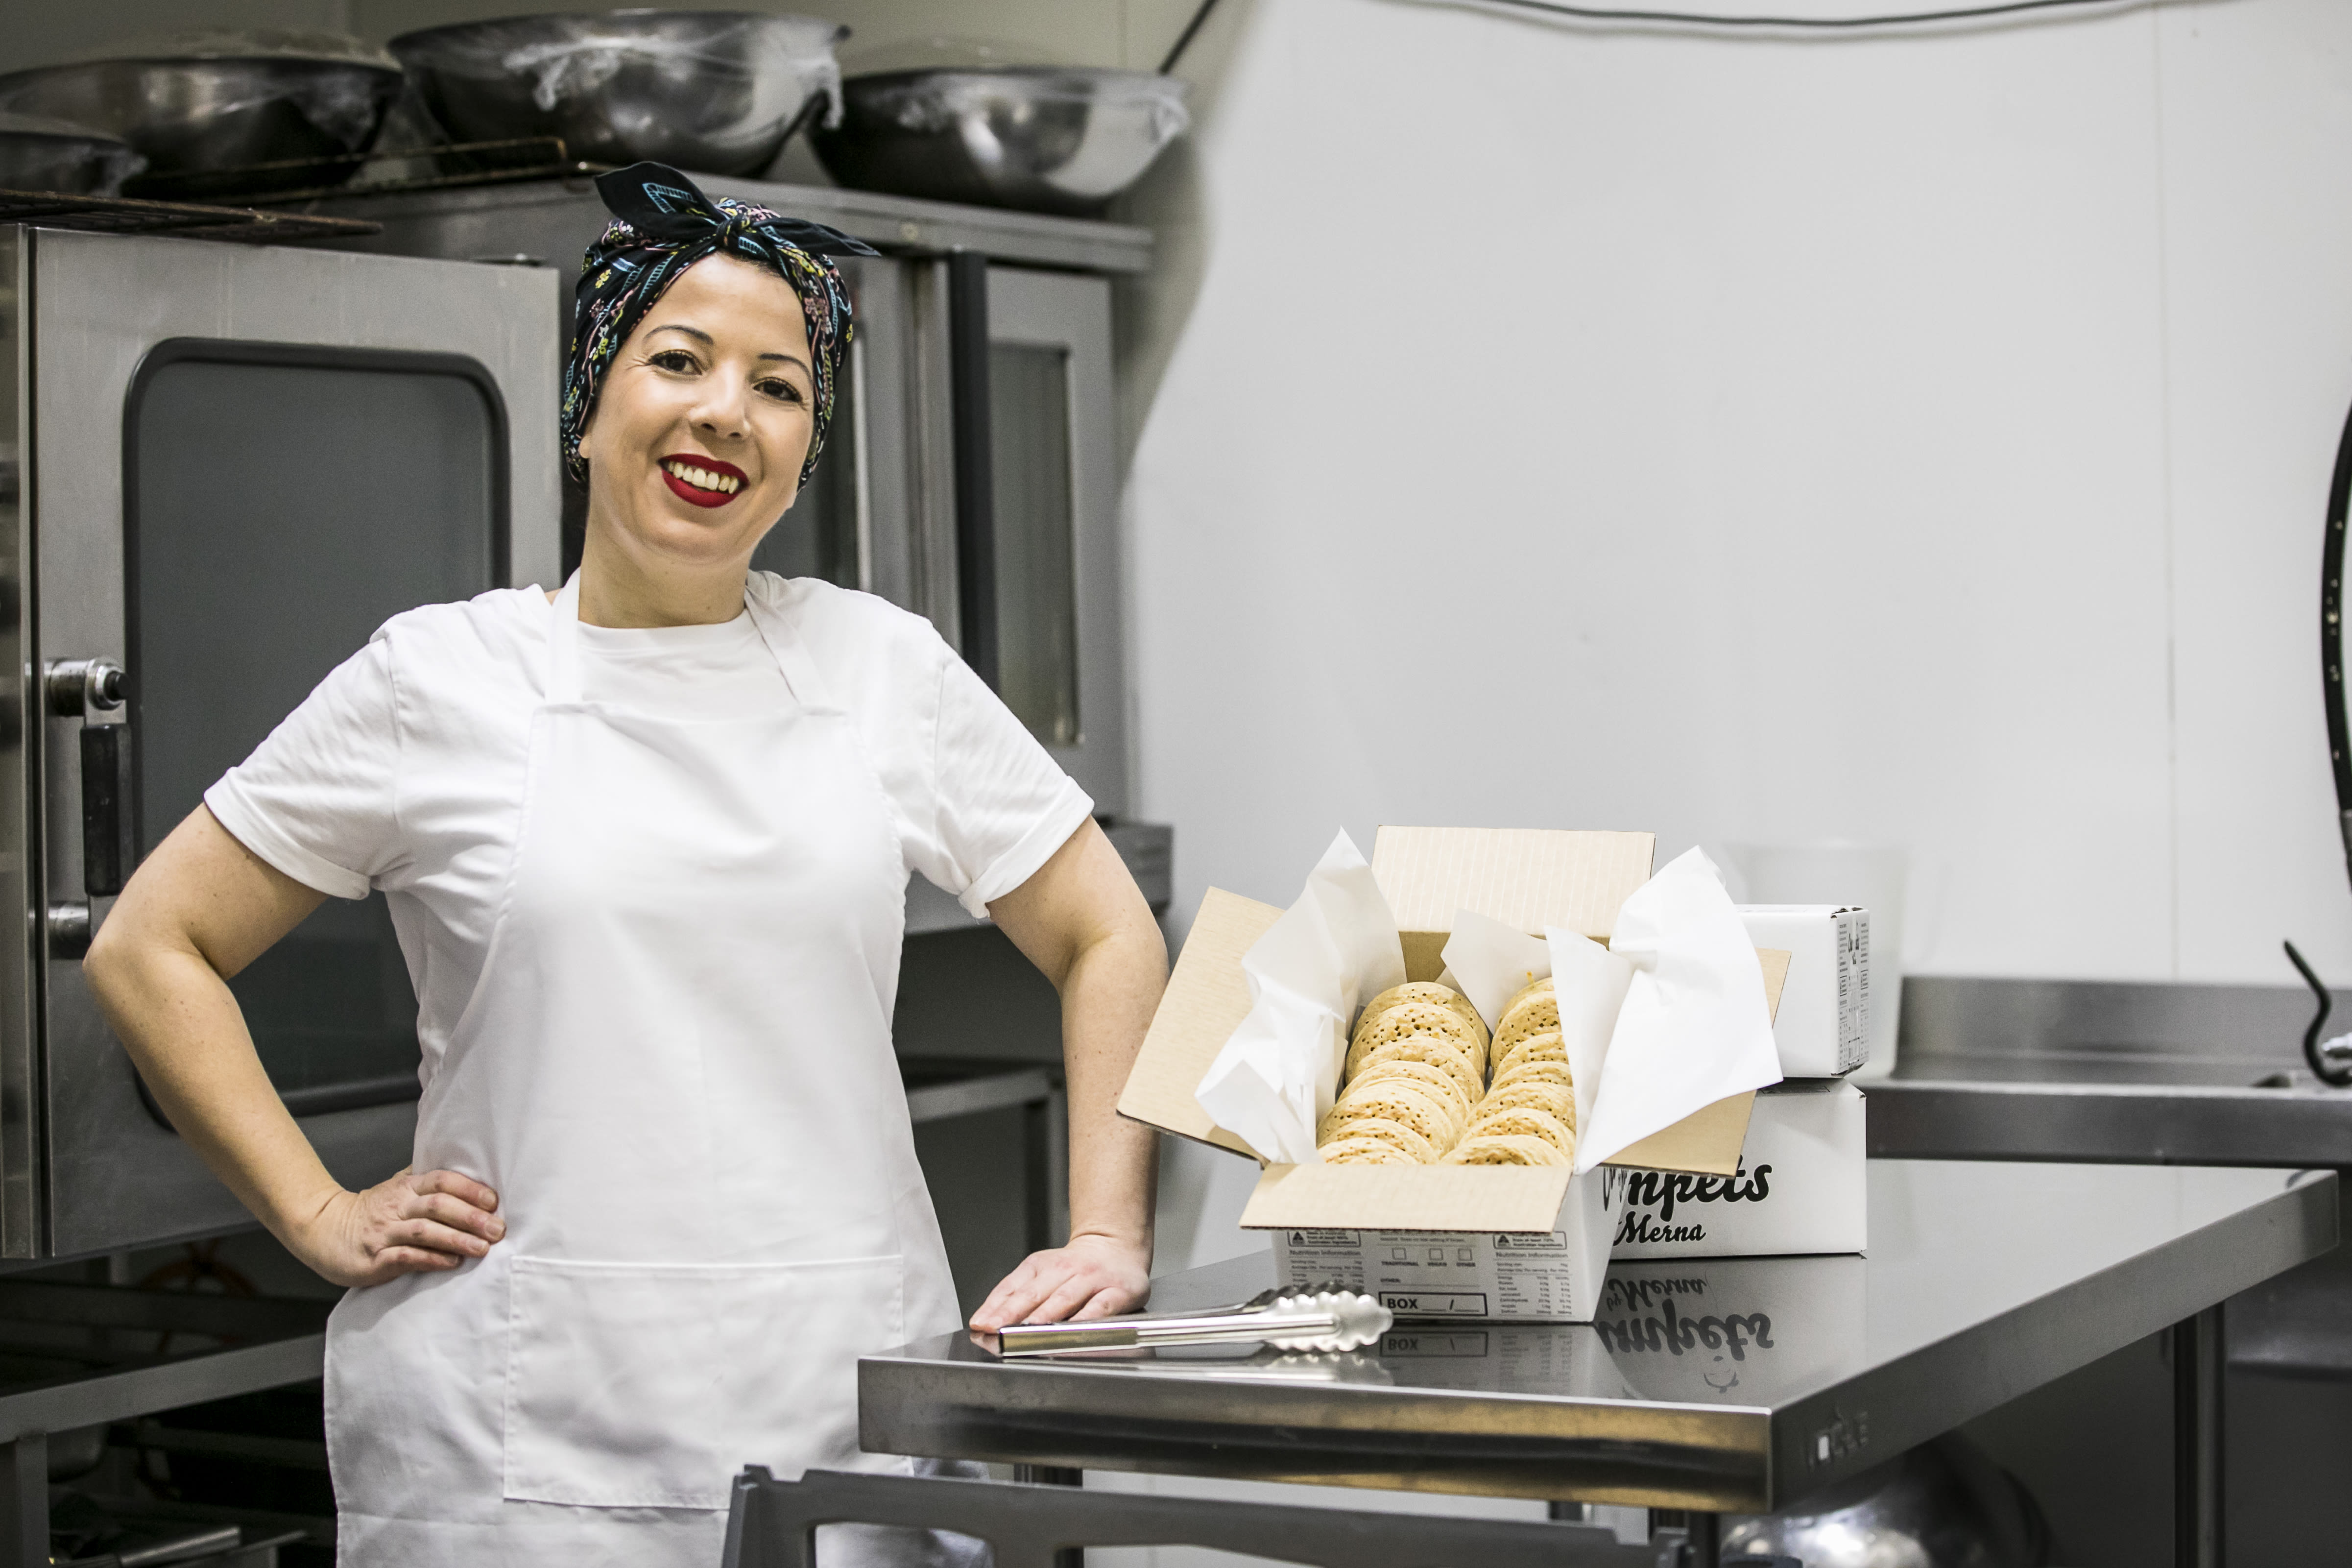 Picture of Merna, Owner of Crumpets by Merna